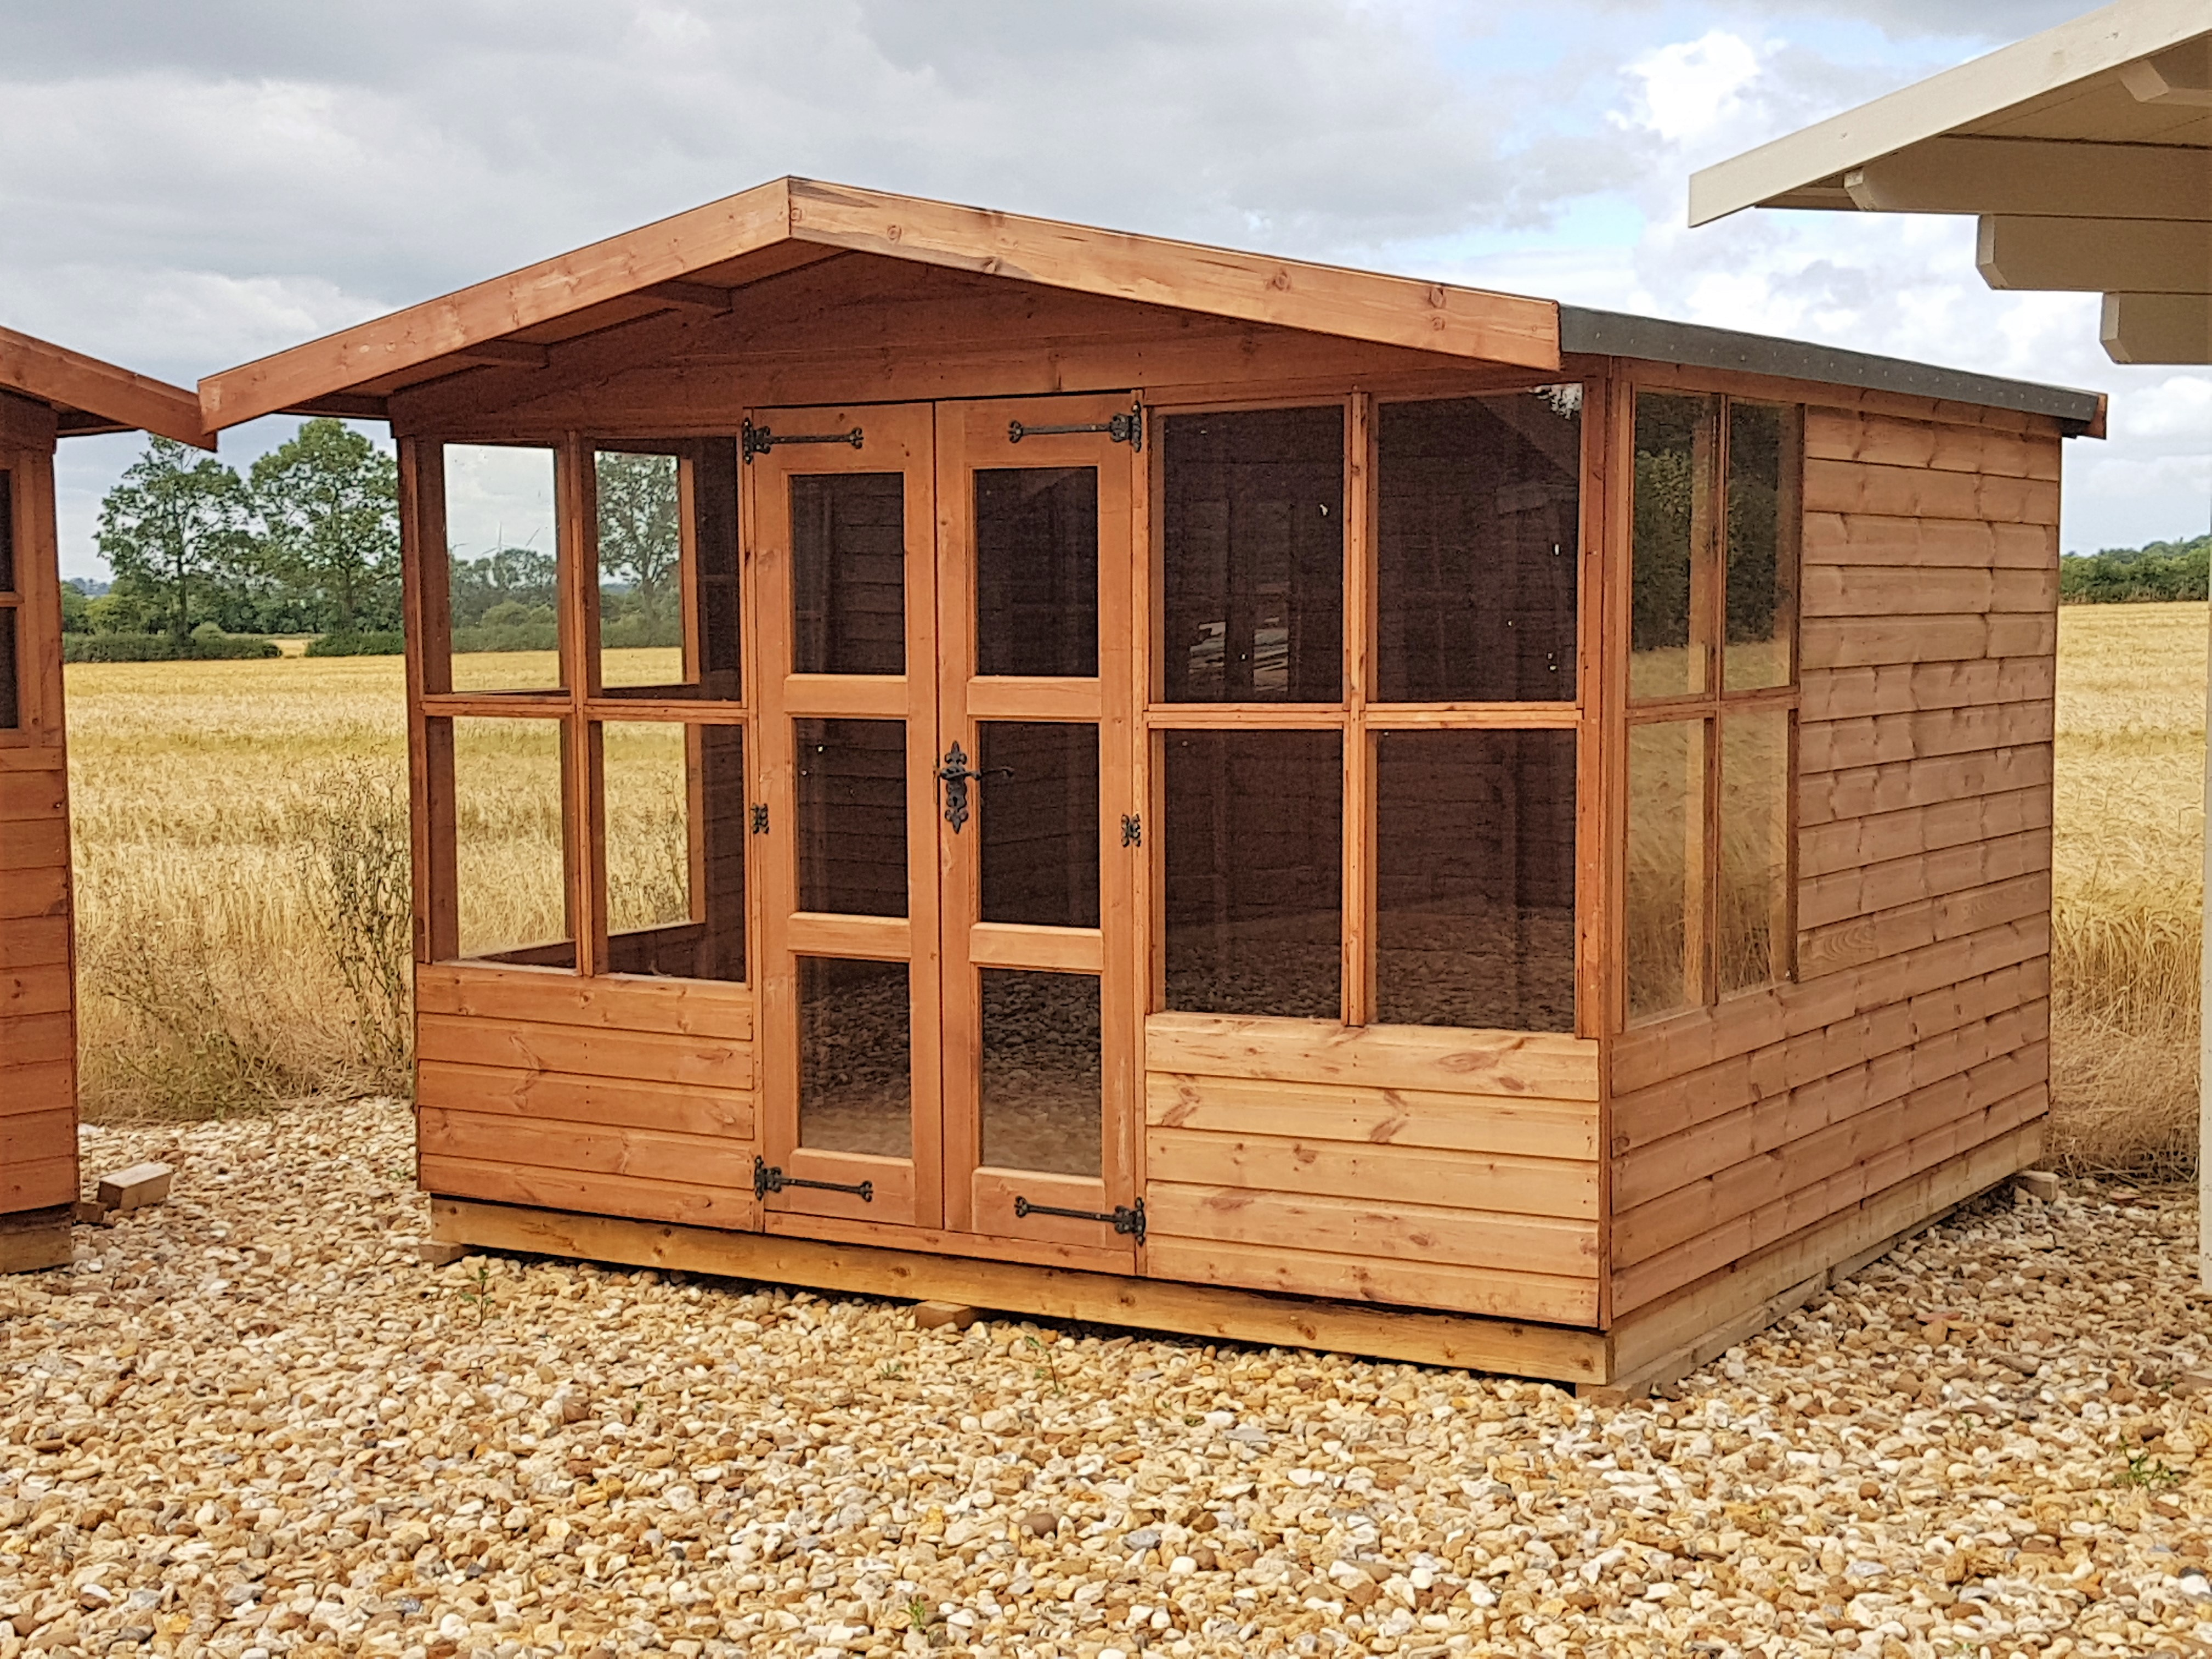 garden ideas designs potting shed pictures gardening whimsical storage plans sheds